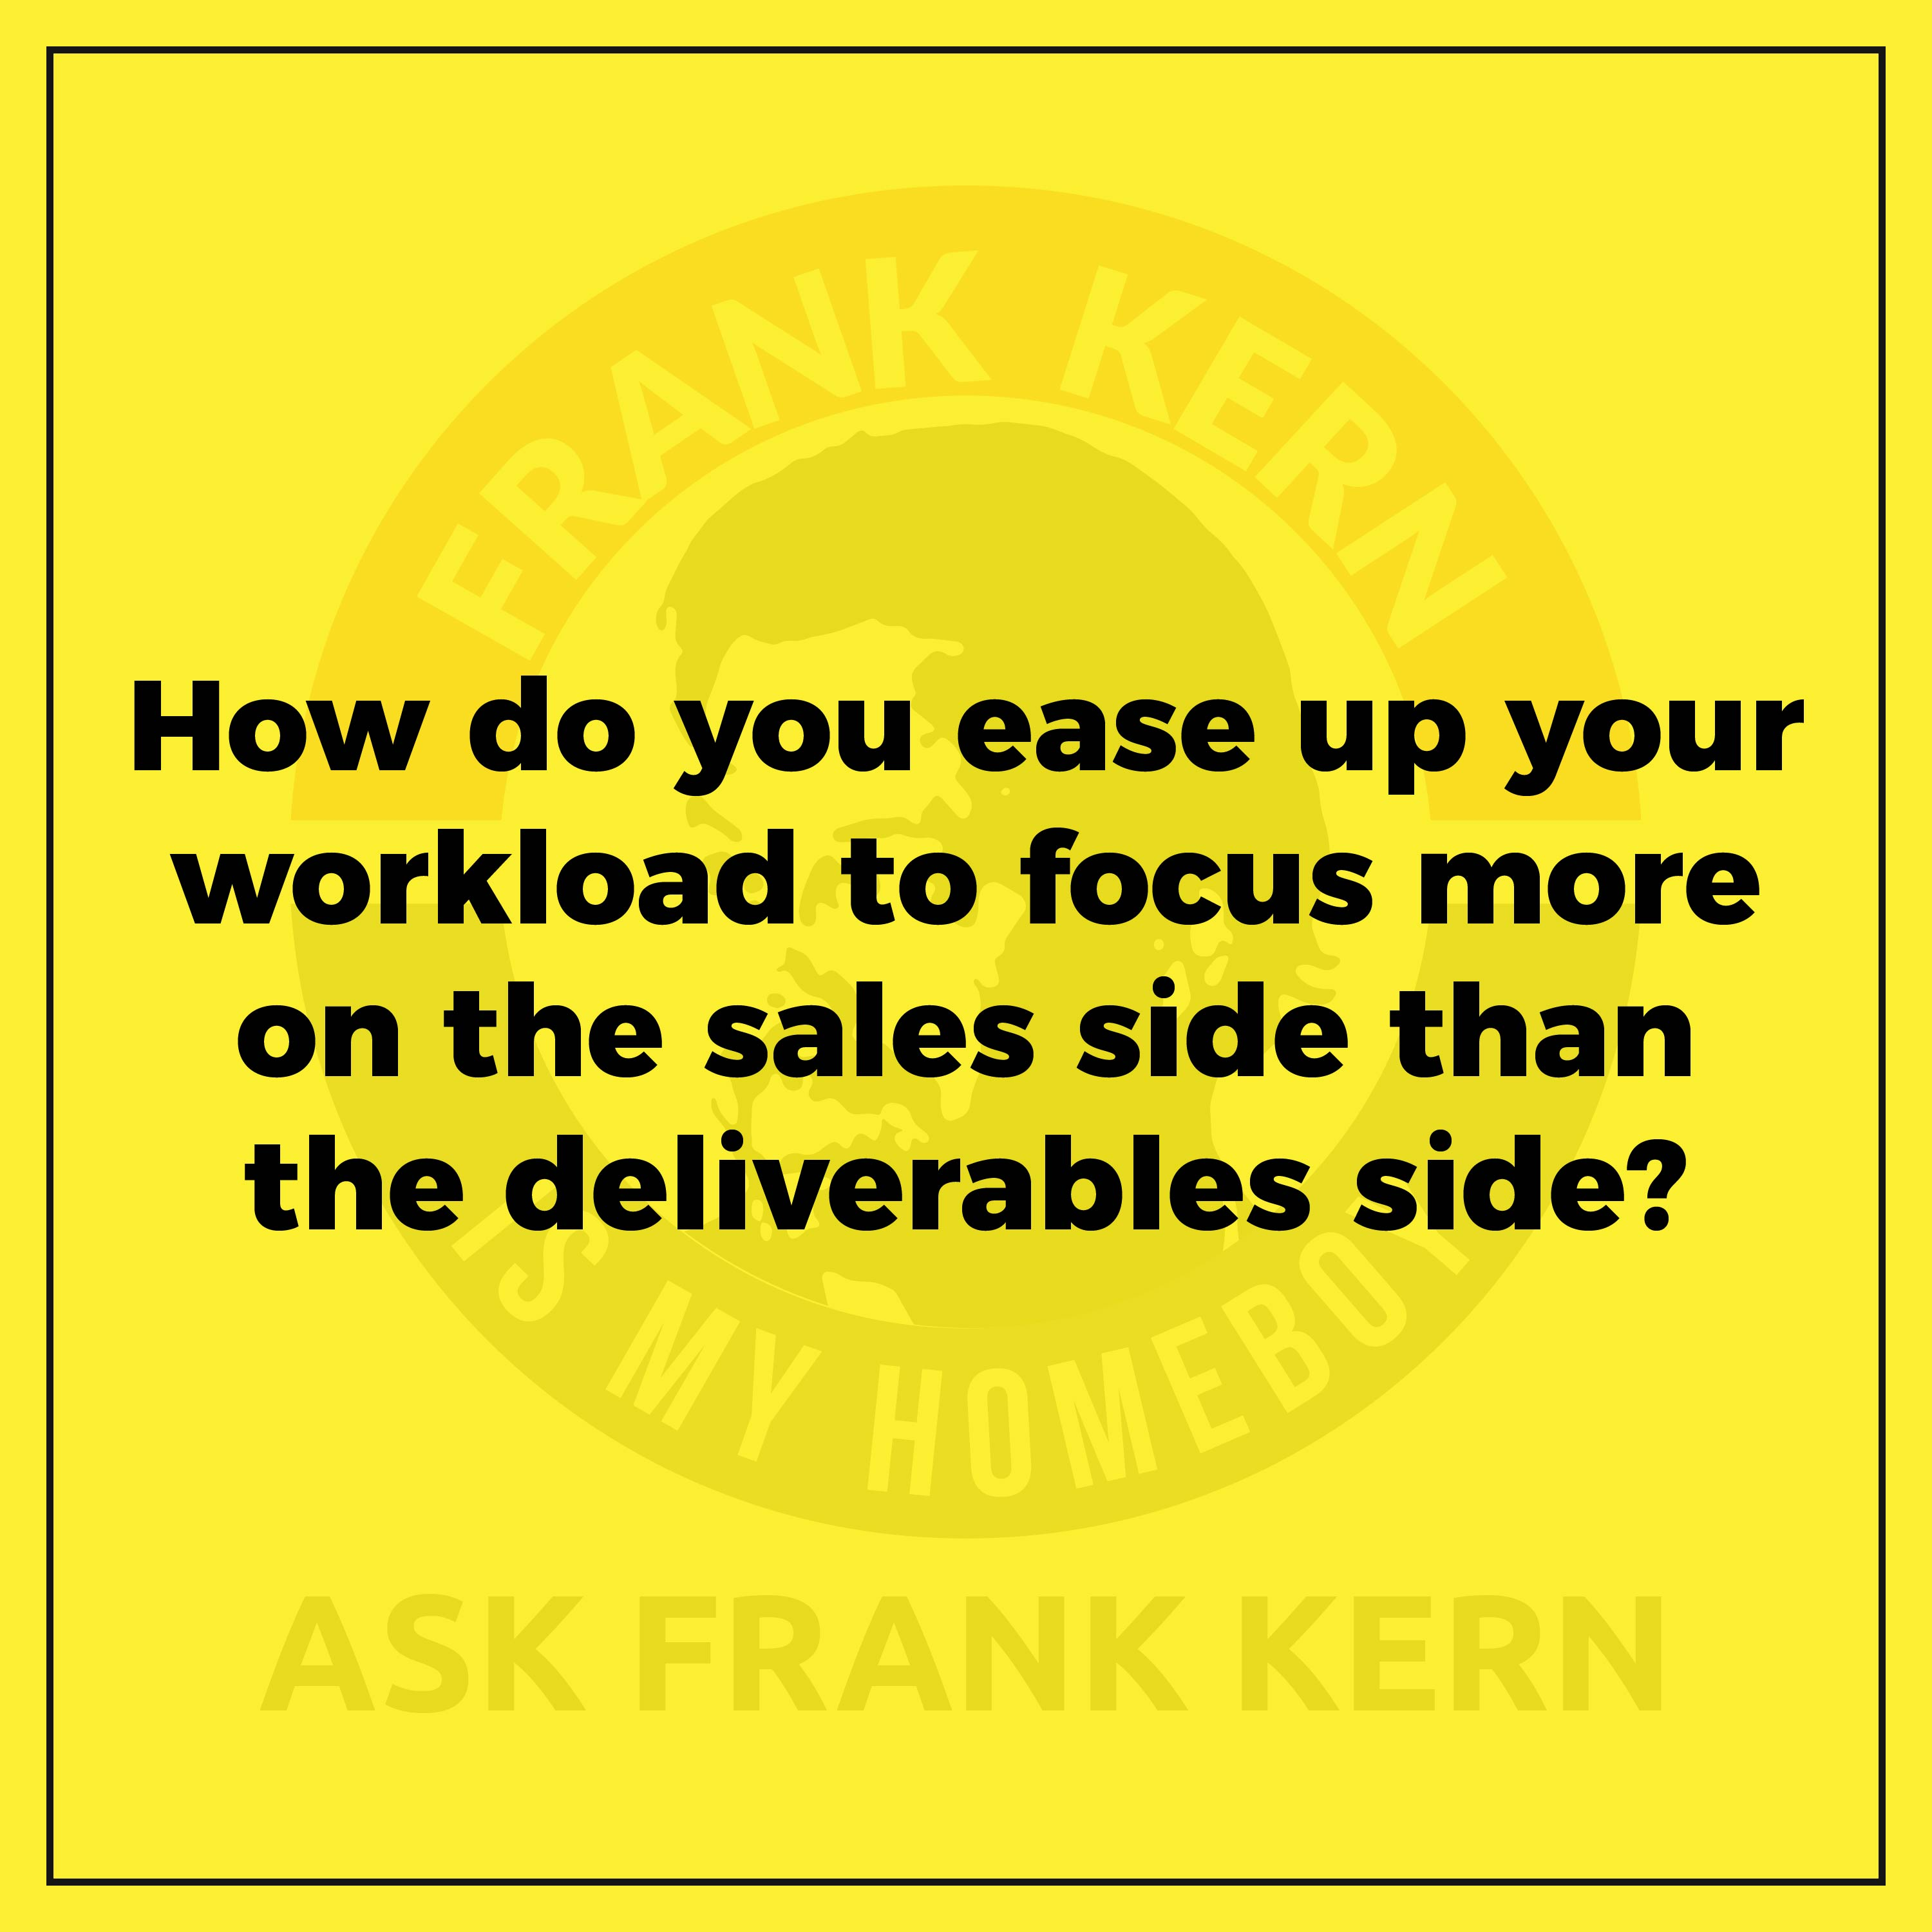 How do you ease up your workload to focus more on the sales side than the deliverables side?